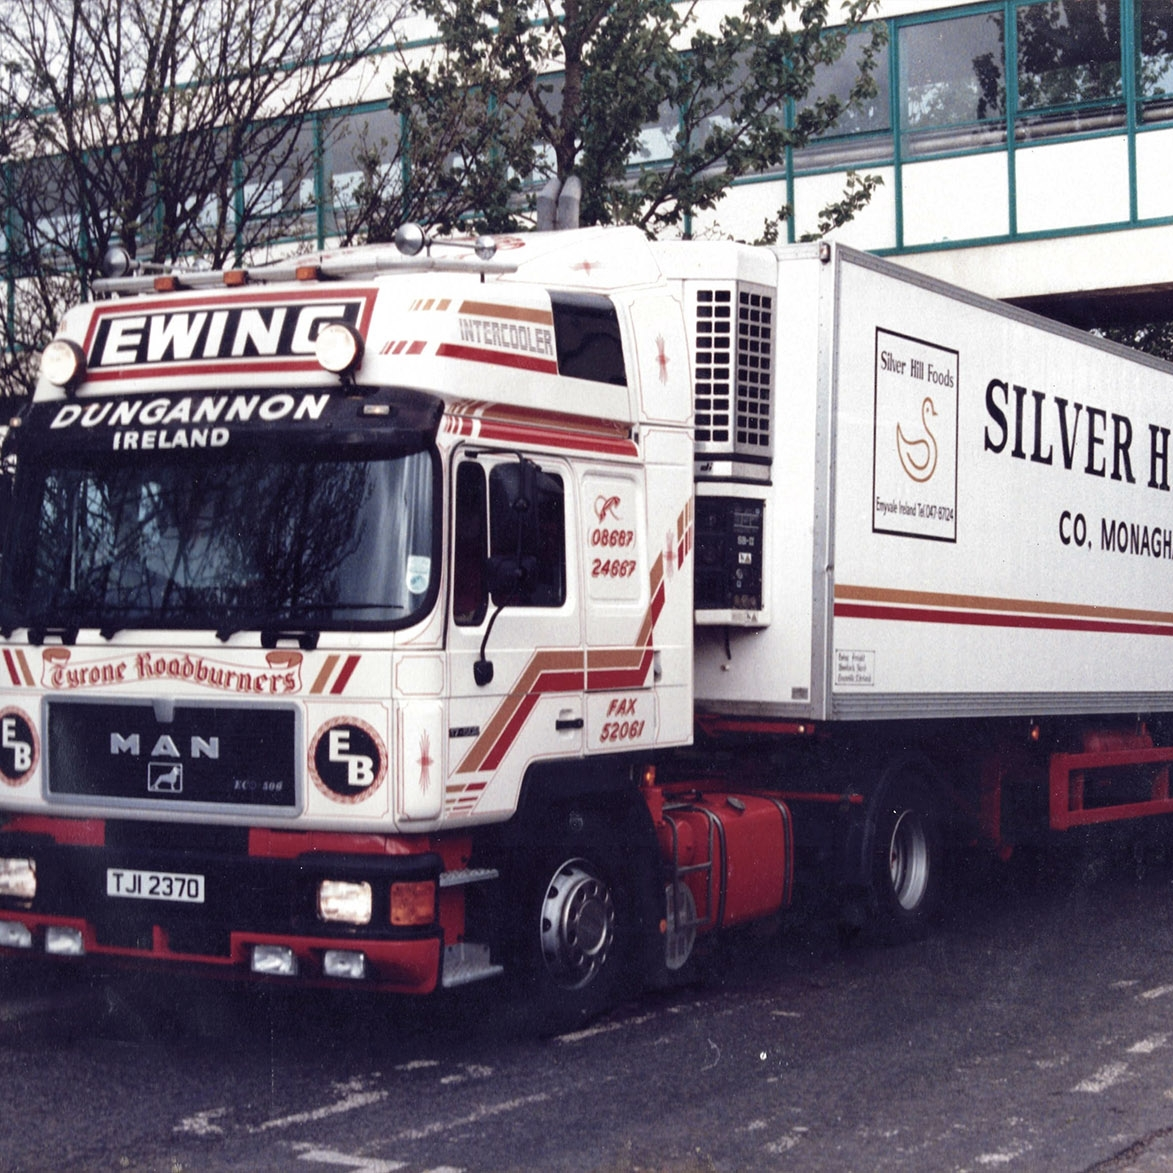 Chinatown - 1984A milestone moment. Silver Hill Farm sold its first load into Chinatown London. This paved the way for our company to become the number 1 supplier of Head On Duck to the Chinese UK Market for the next 30 years.